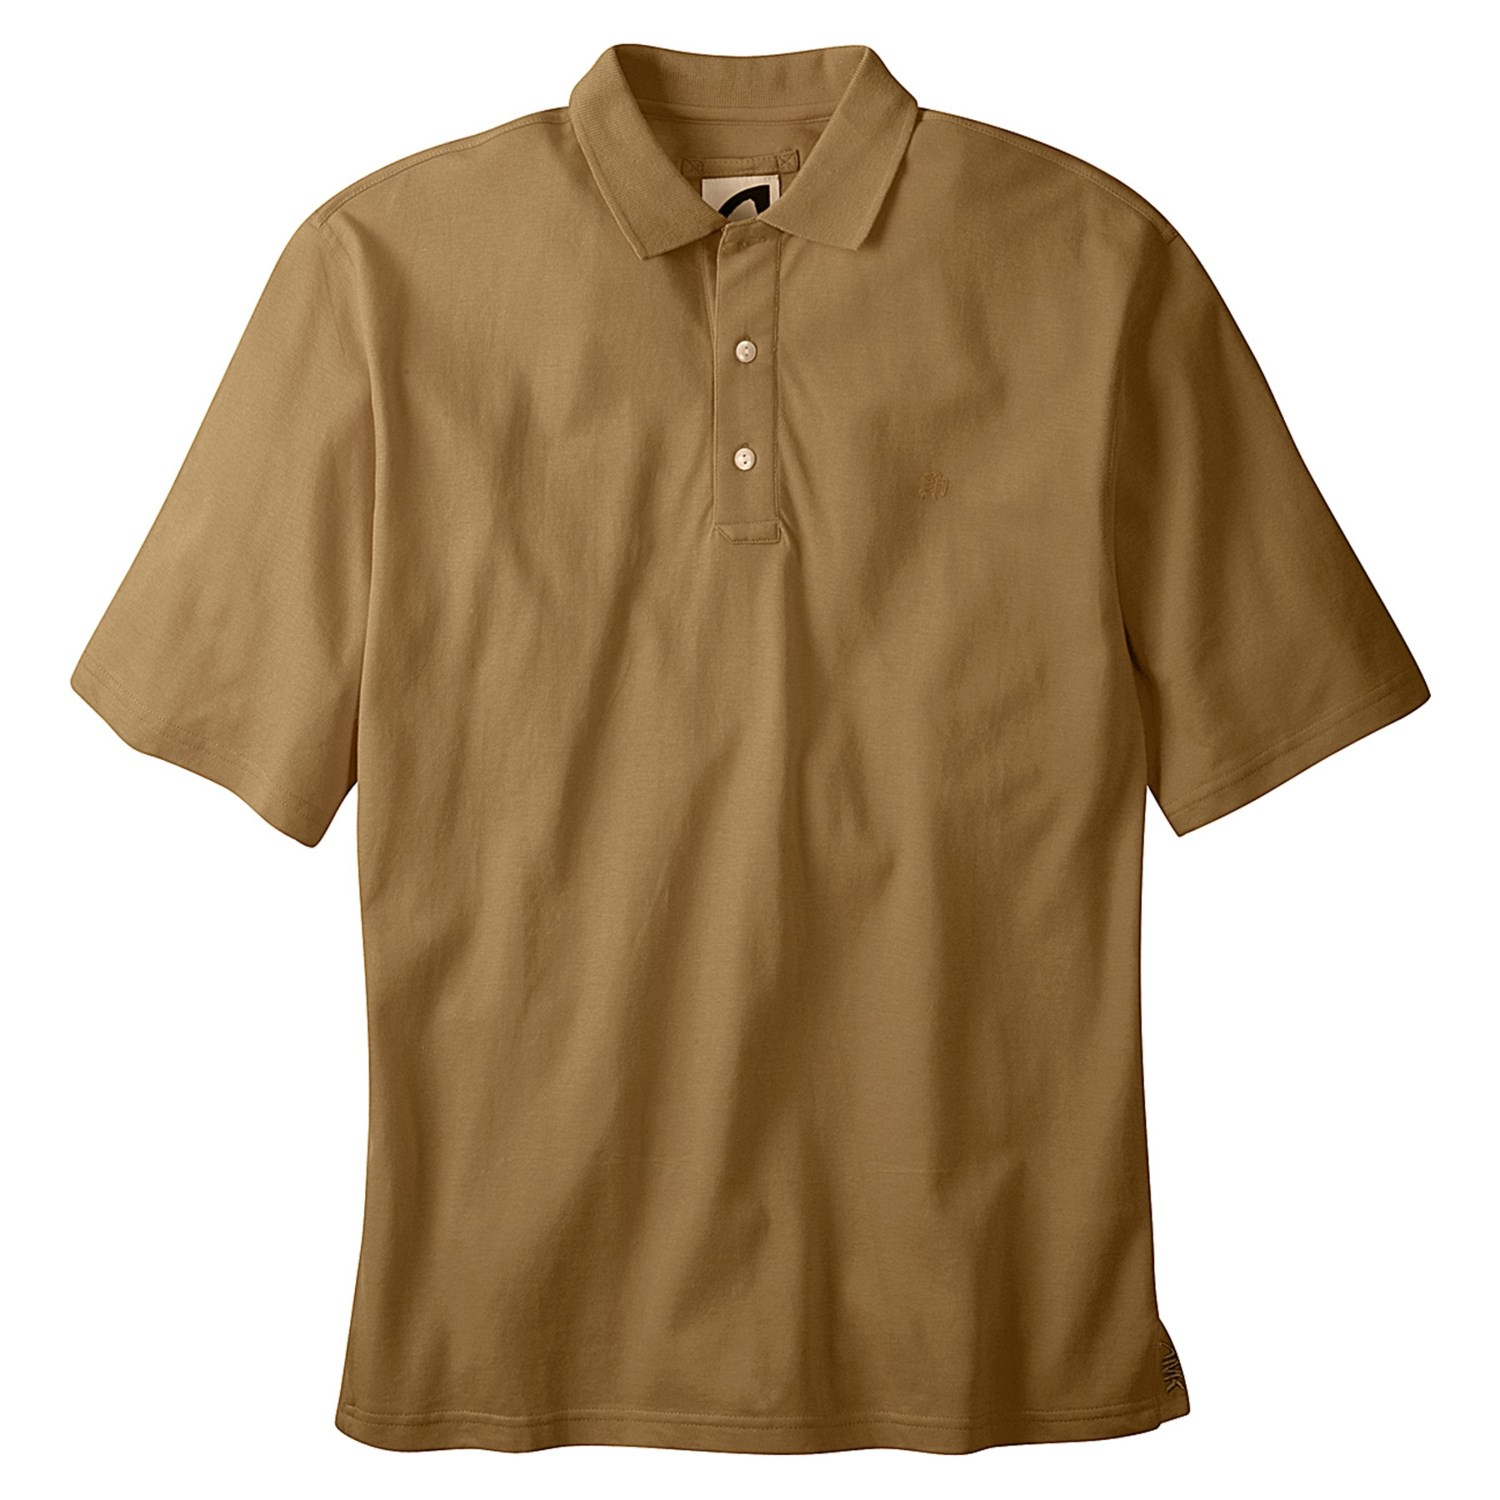 Mens Polos Be a classic with our huge range of stylish men's short sleeve and long sleeve polo shirts with huge savings off the RRP. We bring you iconic styles from Lacoste, Original Penguin, Diesel and many more, as well as designer styles from brands such as French Connection, Peter Werth and more!